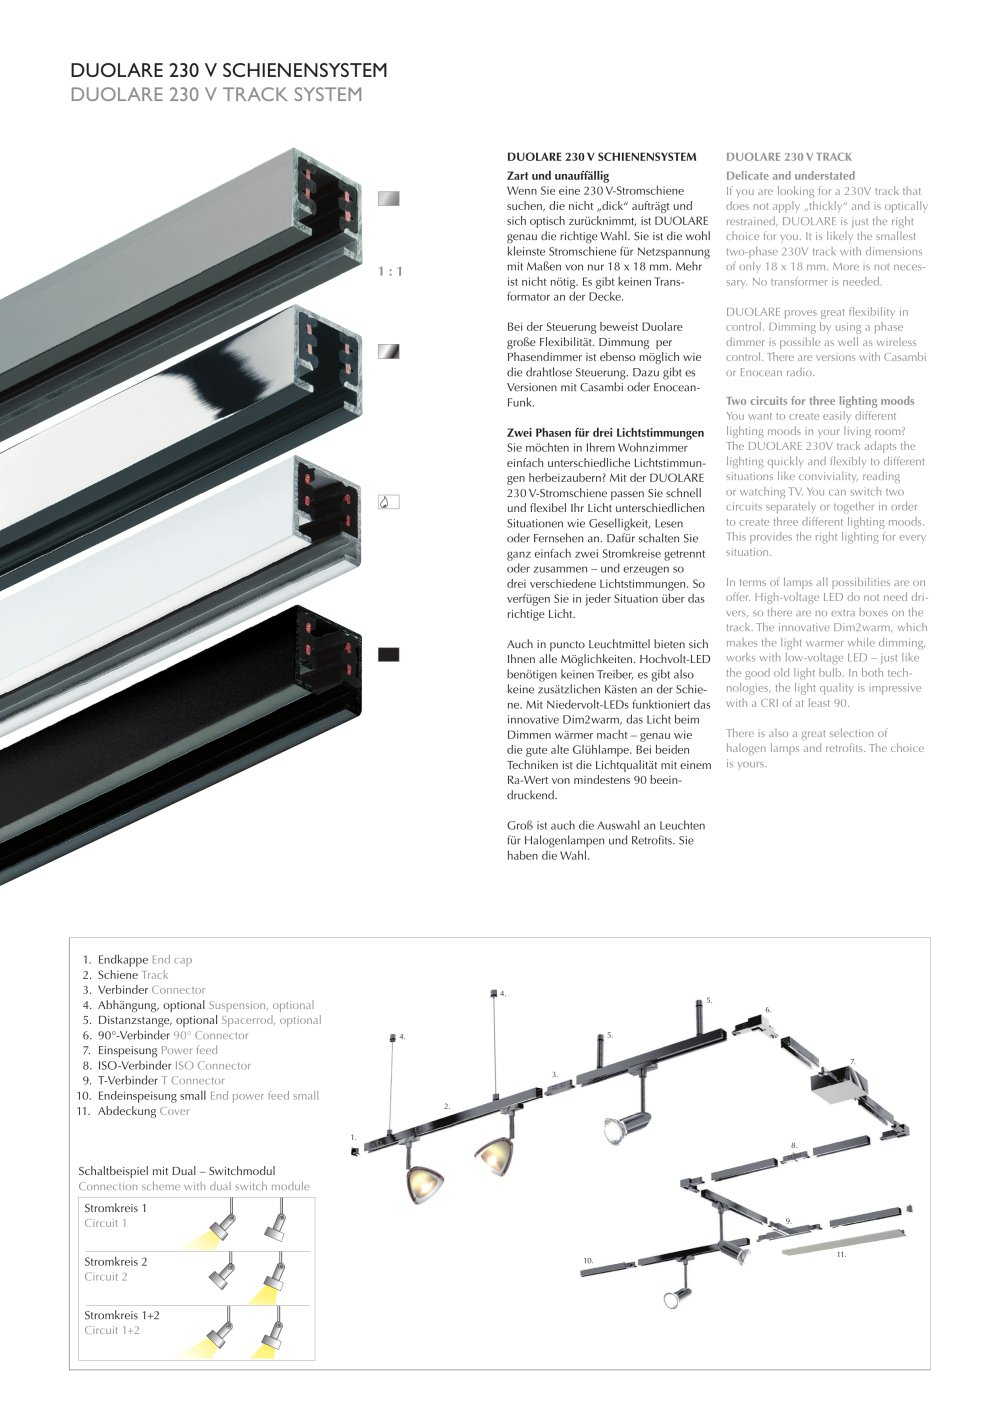 Duolare 230 V Track System 2 Circuits Bruck Pdf Catalogs Led Light Circuit 1 8 Pages